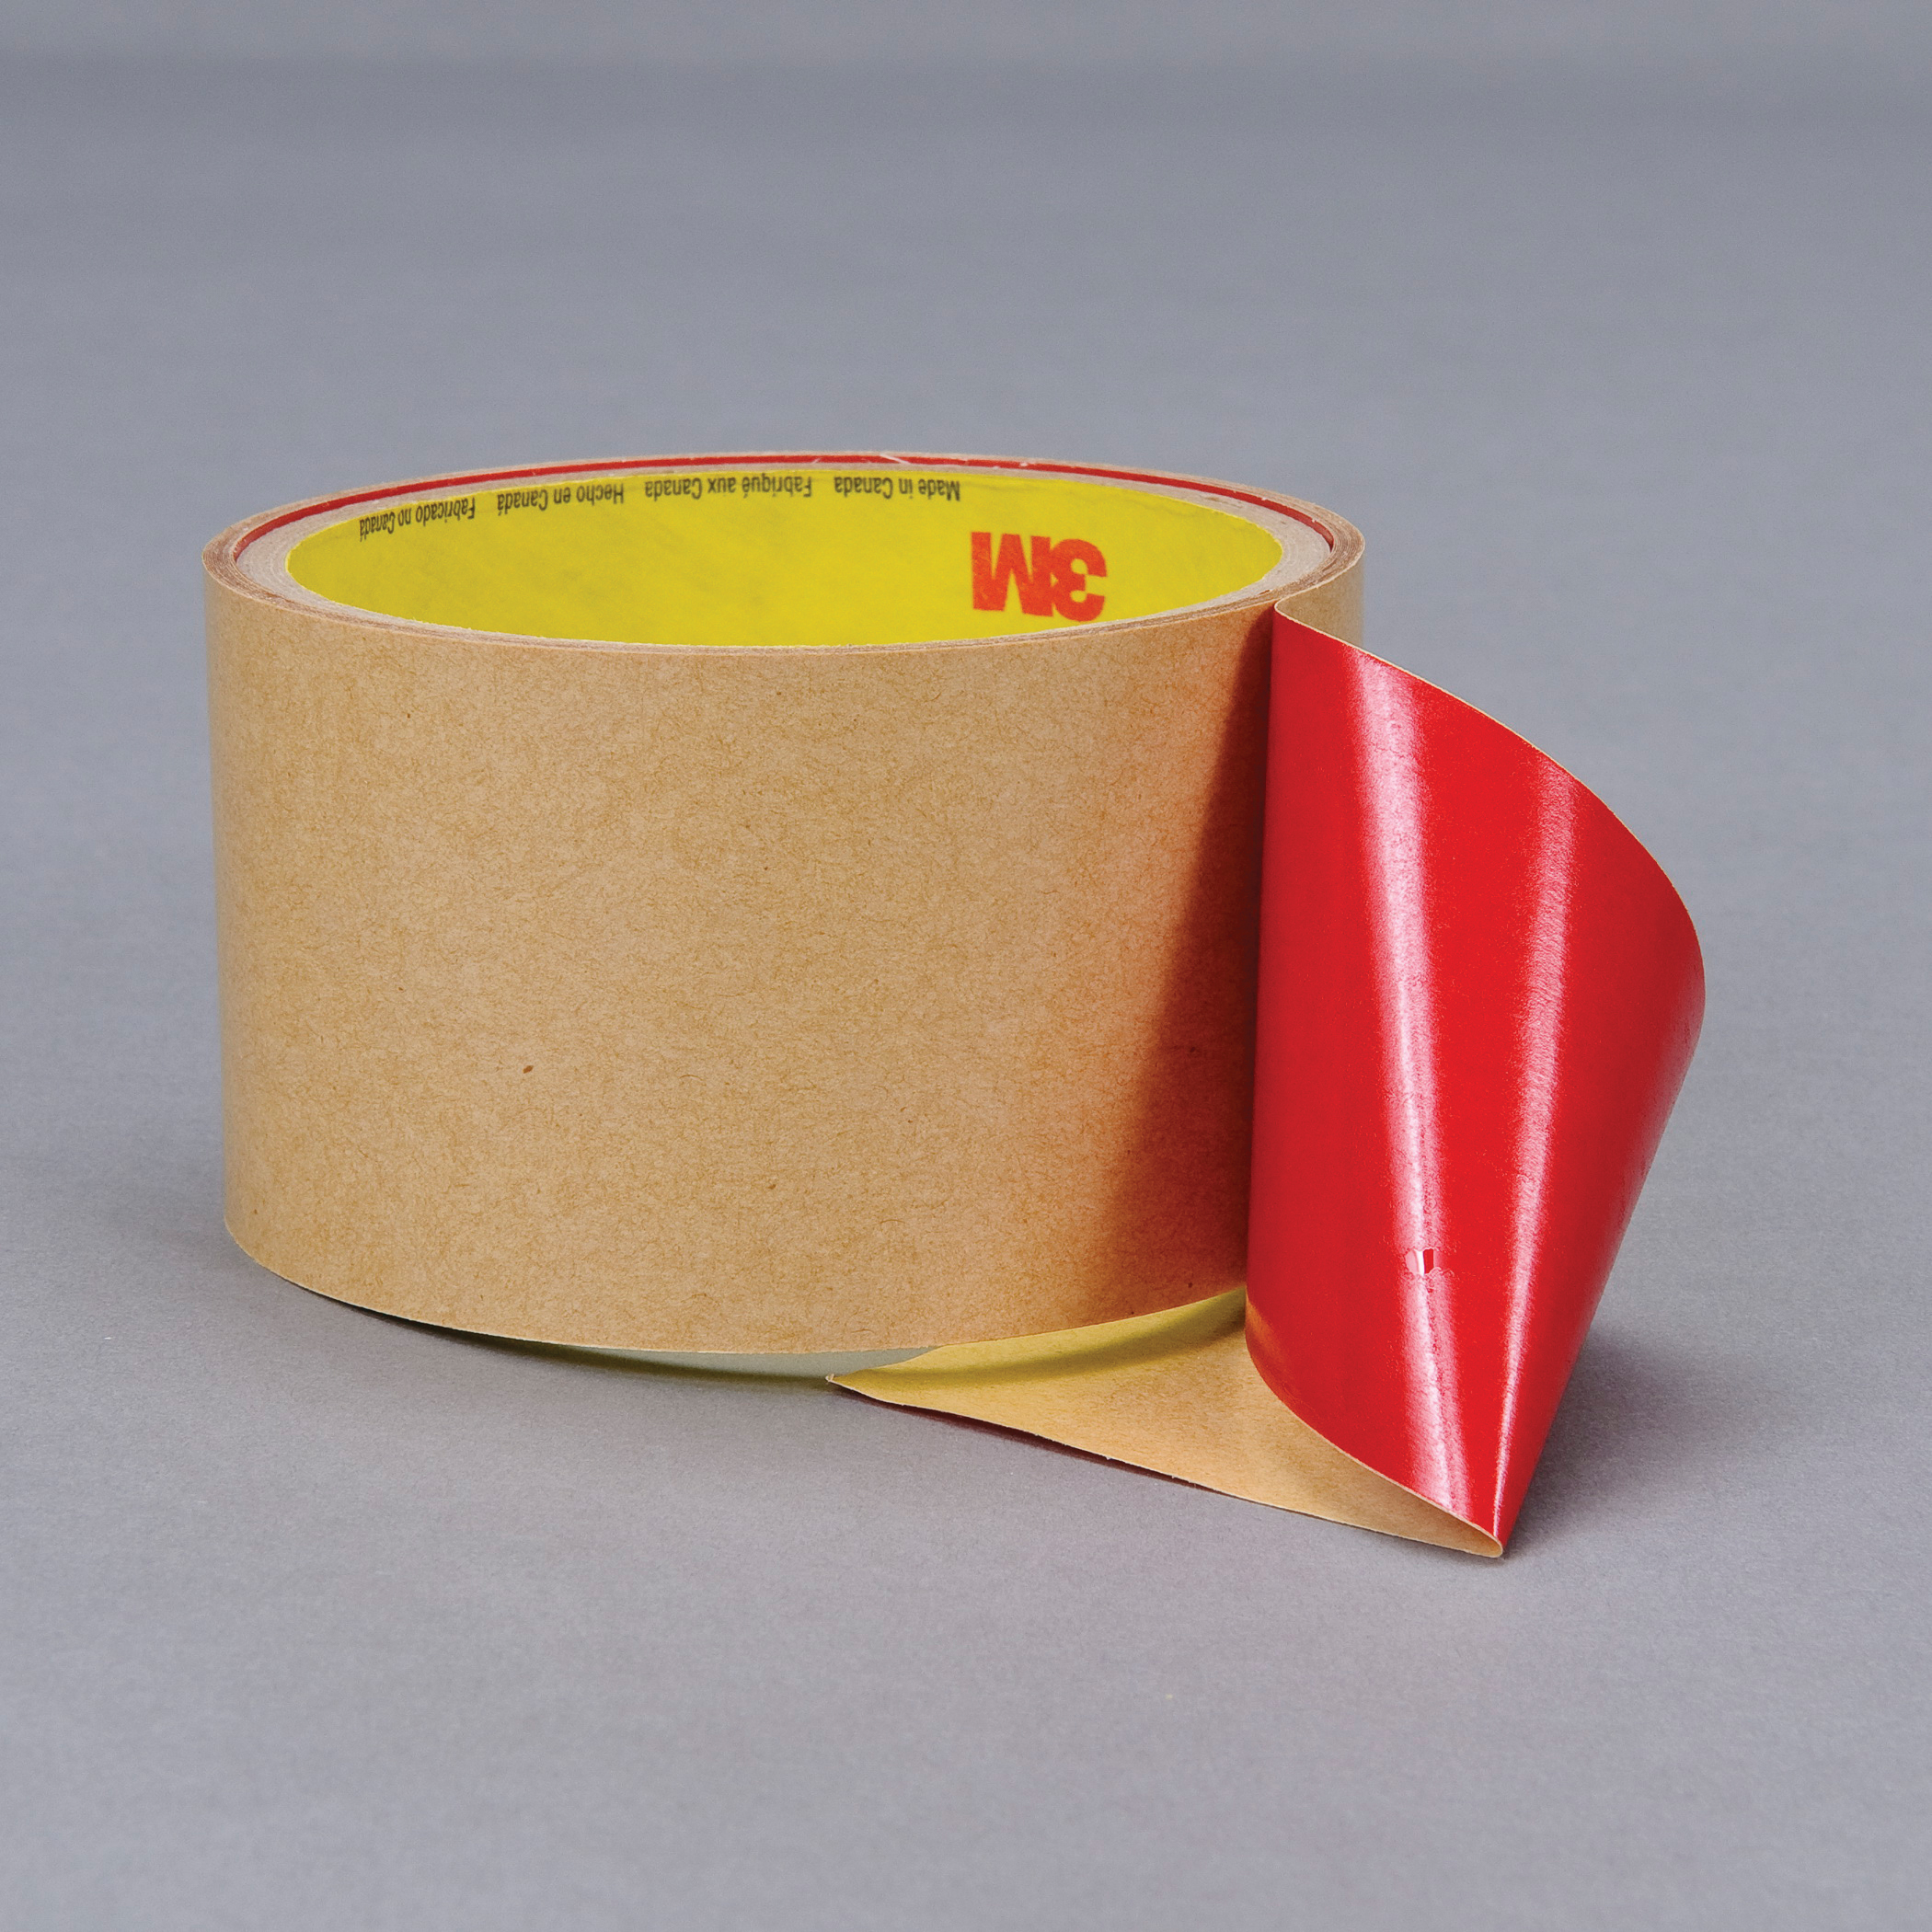 3M™ 021200-16055 Non-Repulpable Double Coated Splicing Tape, 36 yd L x 1 in W, 4 mil THK, 400HT Acrylic Adhesive, Polyester Backing, Red